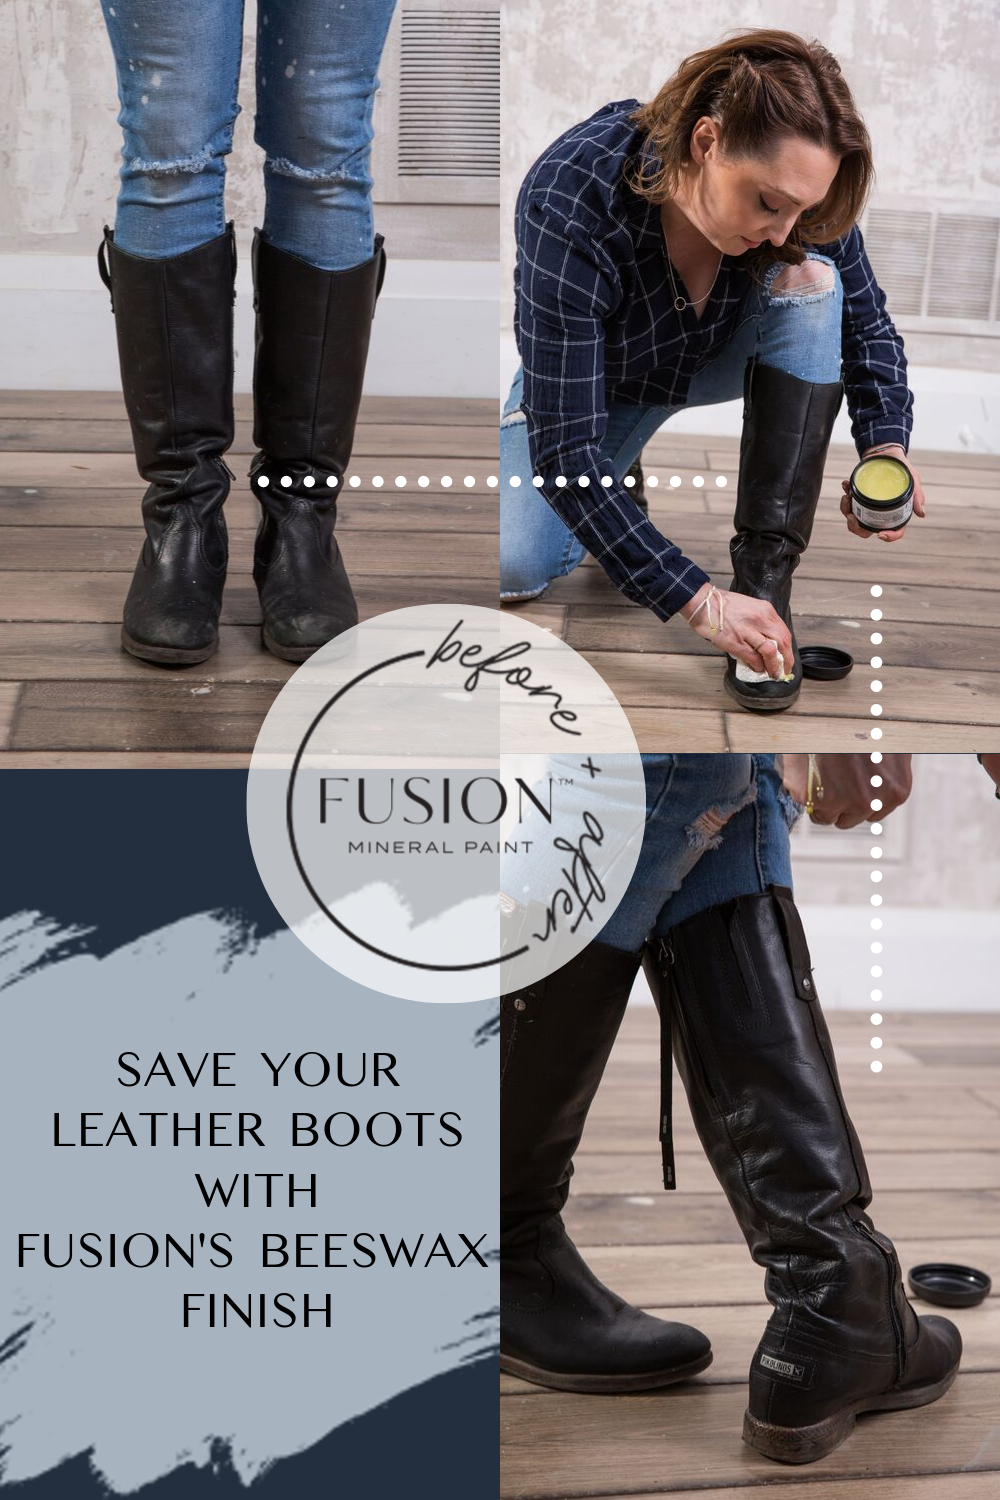 How To Refresh Your Leather Boots With Beeswax In 2020 Leather Boots Mineral Paint Painting Leather